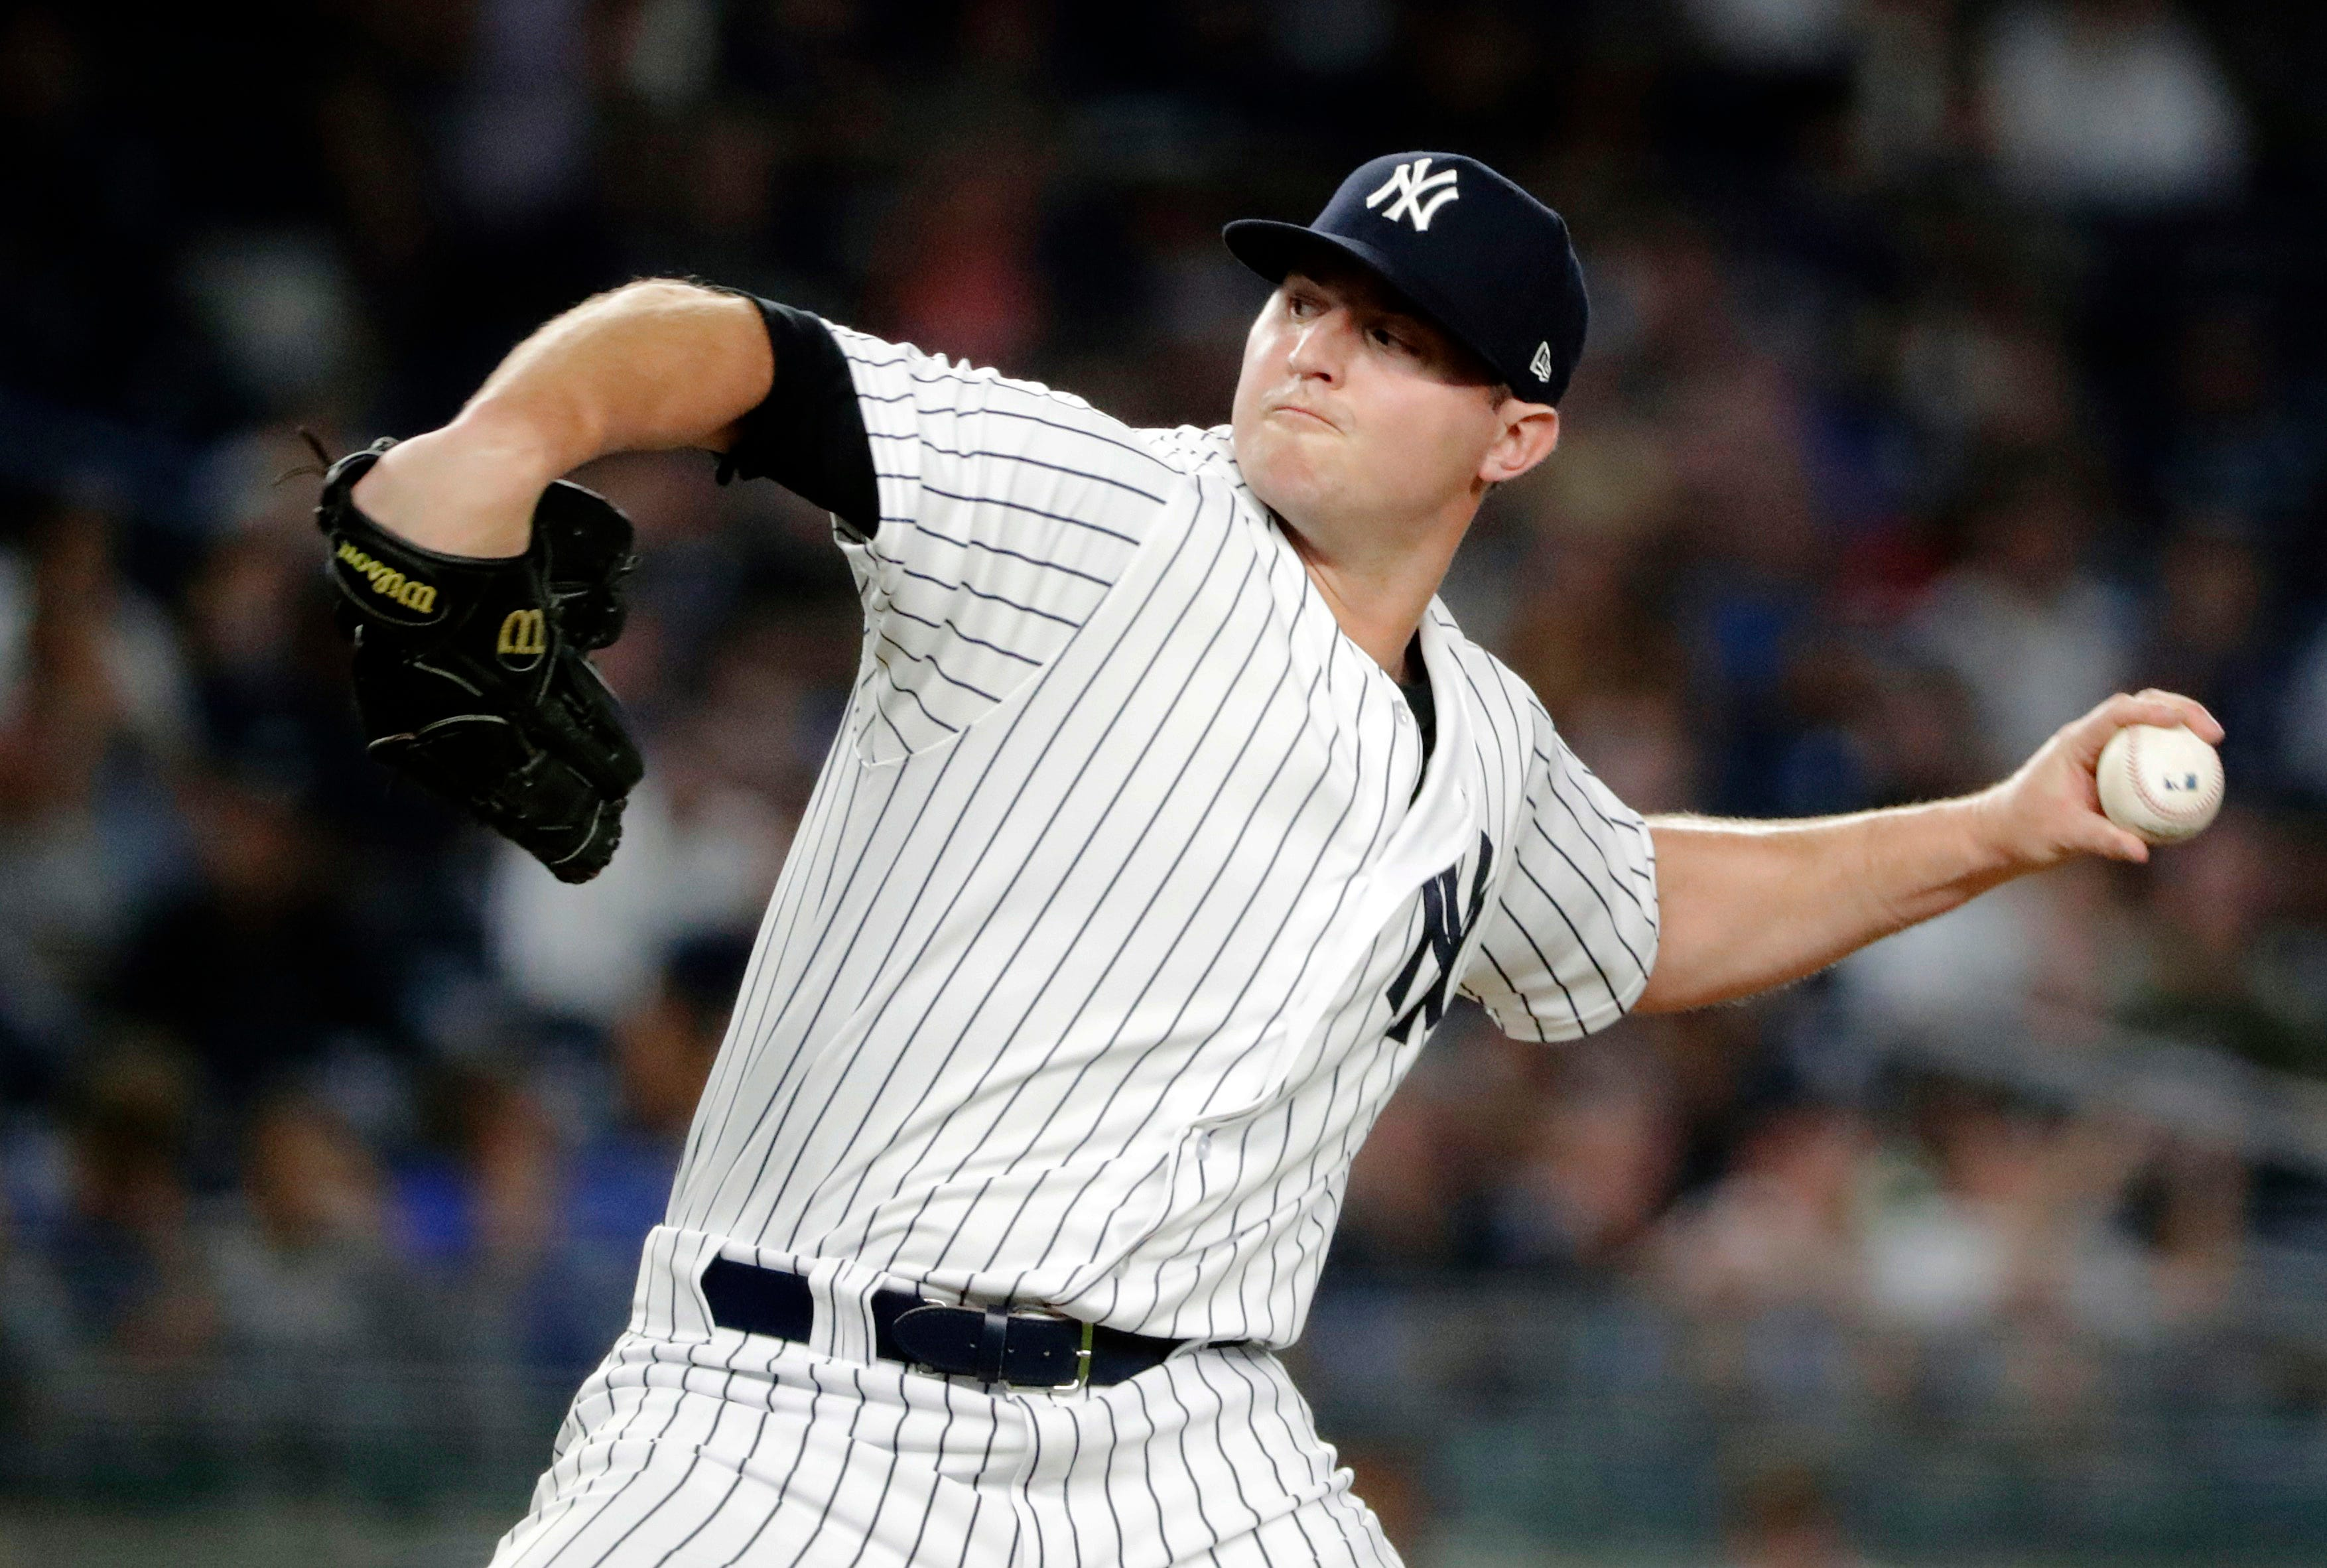 Name game: Britton says wife, Yanks led to spelling change